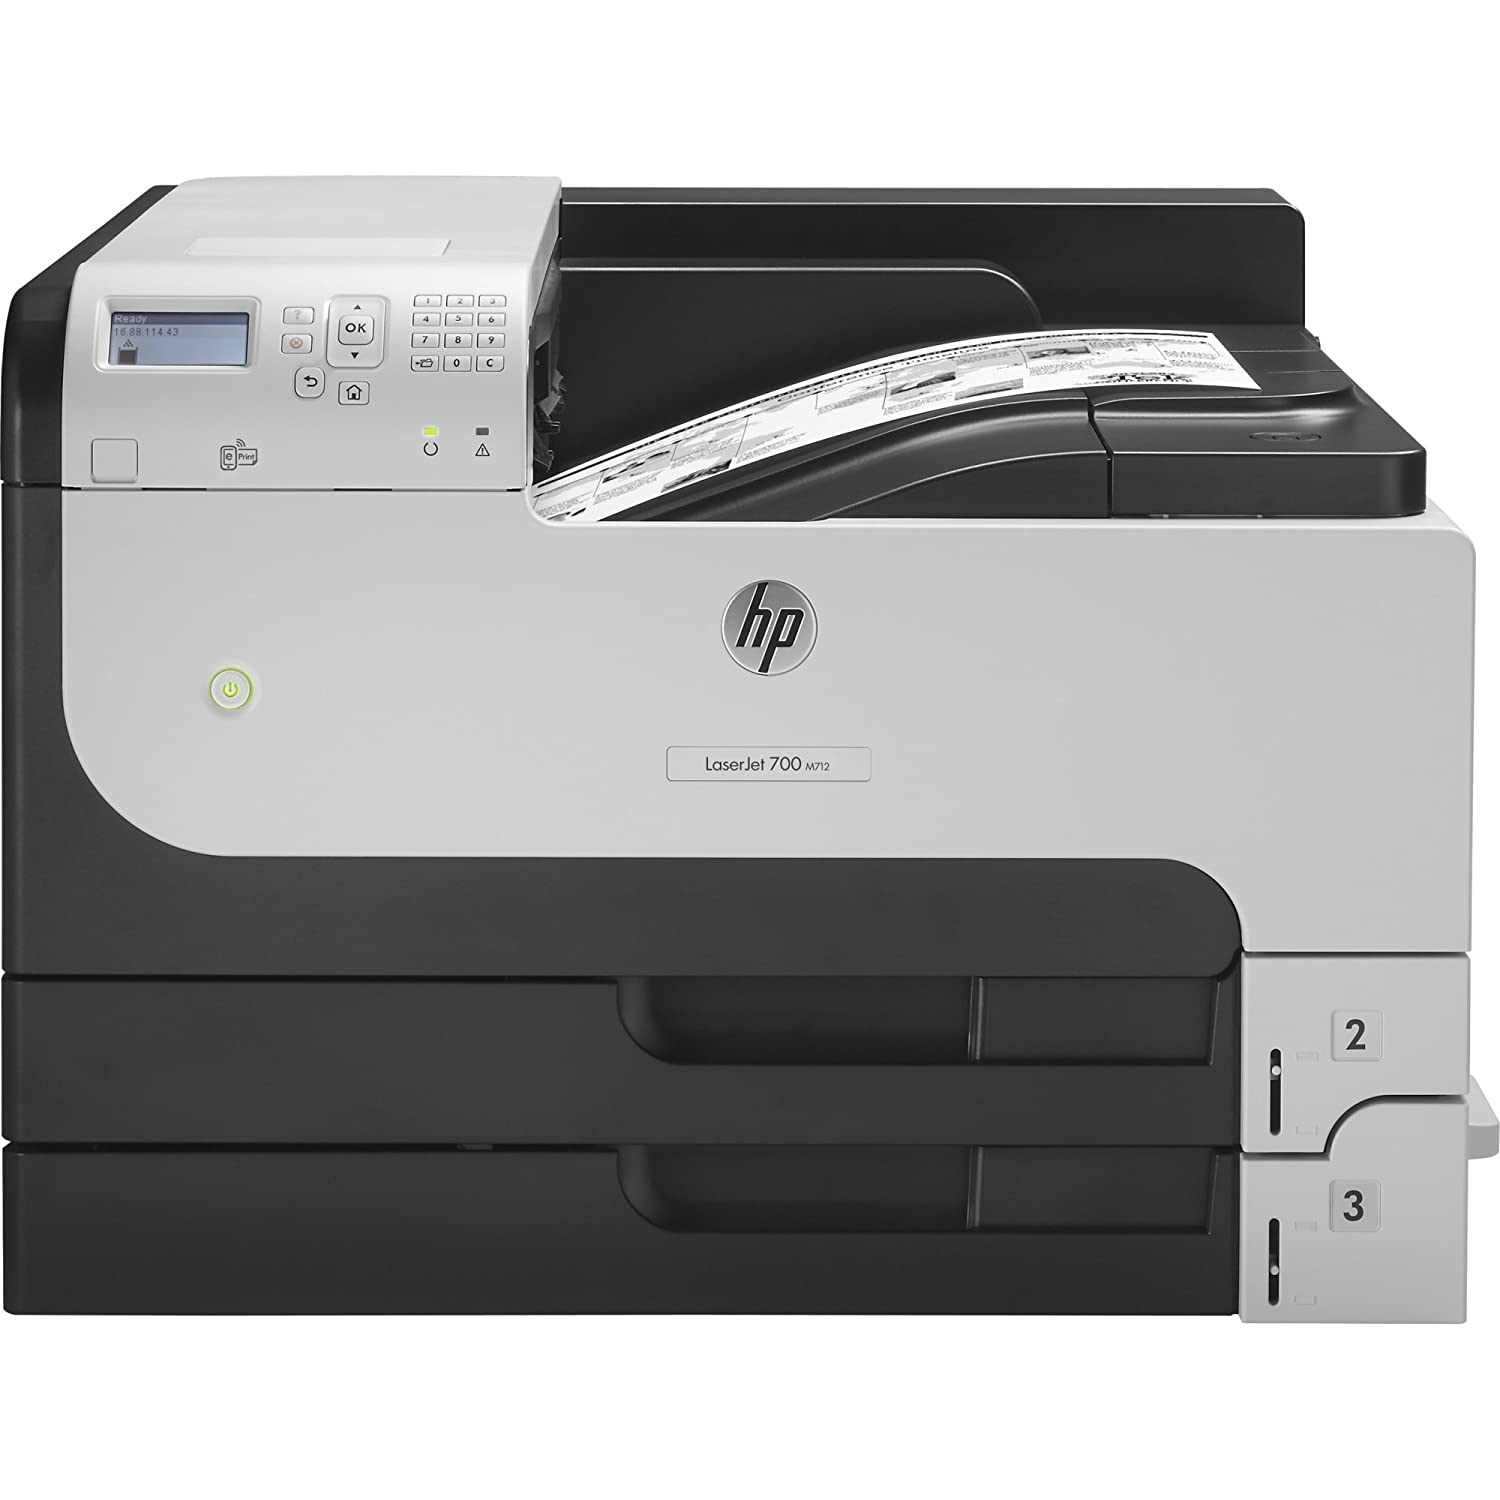 Hp m750 color printing cost per page - Amazon Com Hp Laserjet M712dn 41 Ppm 1200 X 1200 Dpi Duplex Network Monochrome Laser Printer Cf236a Bgj Office Products